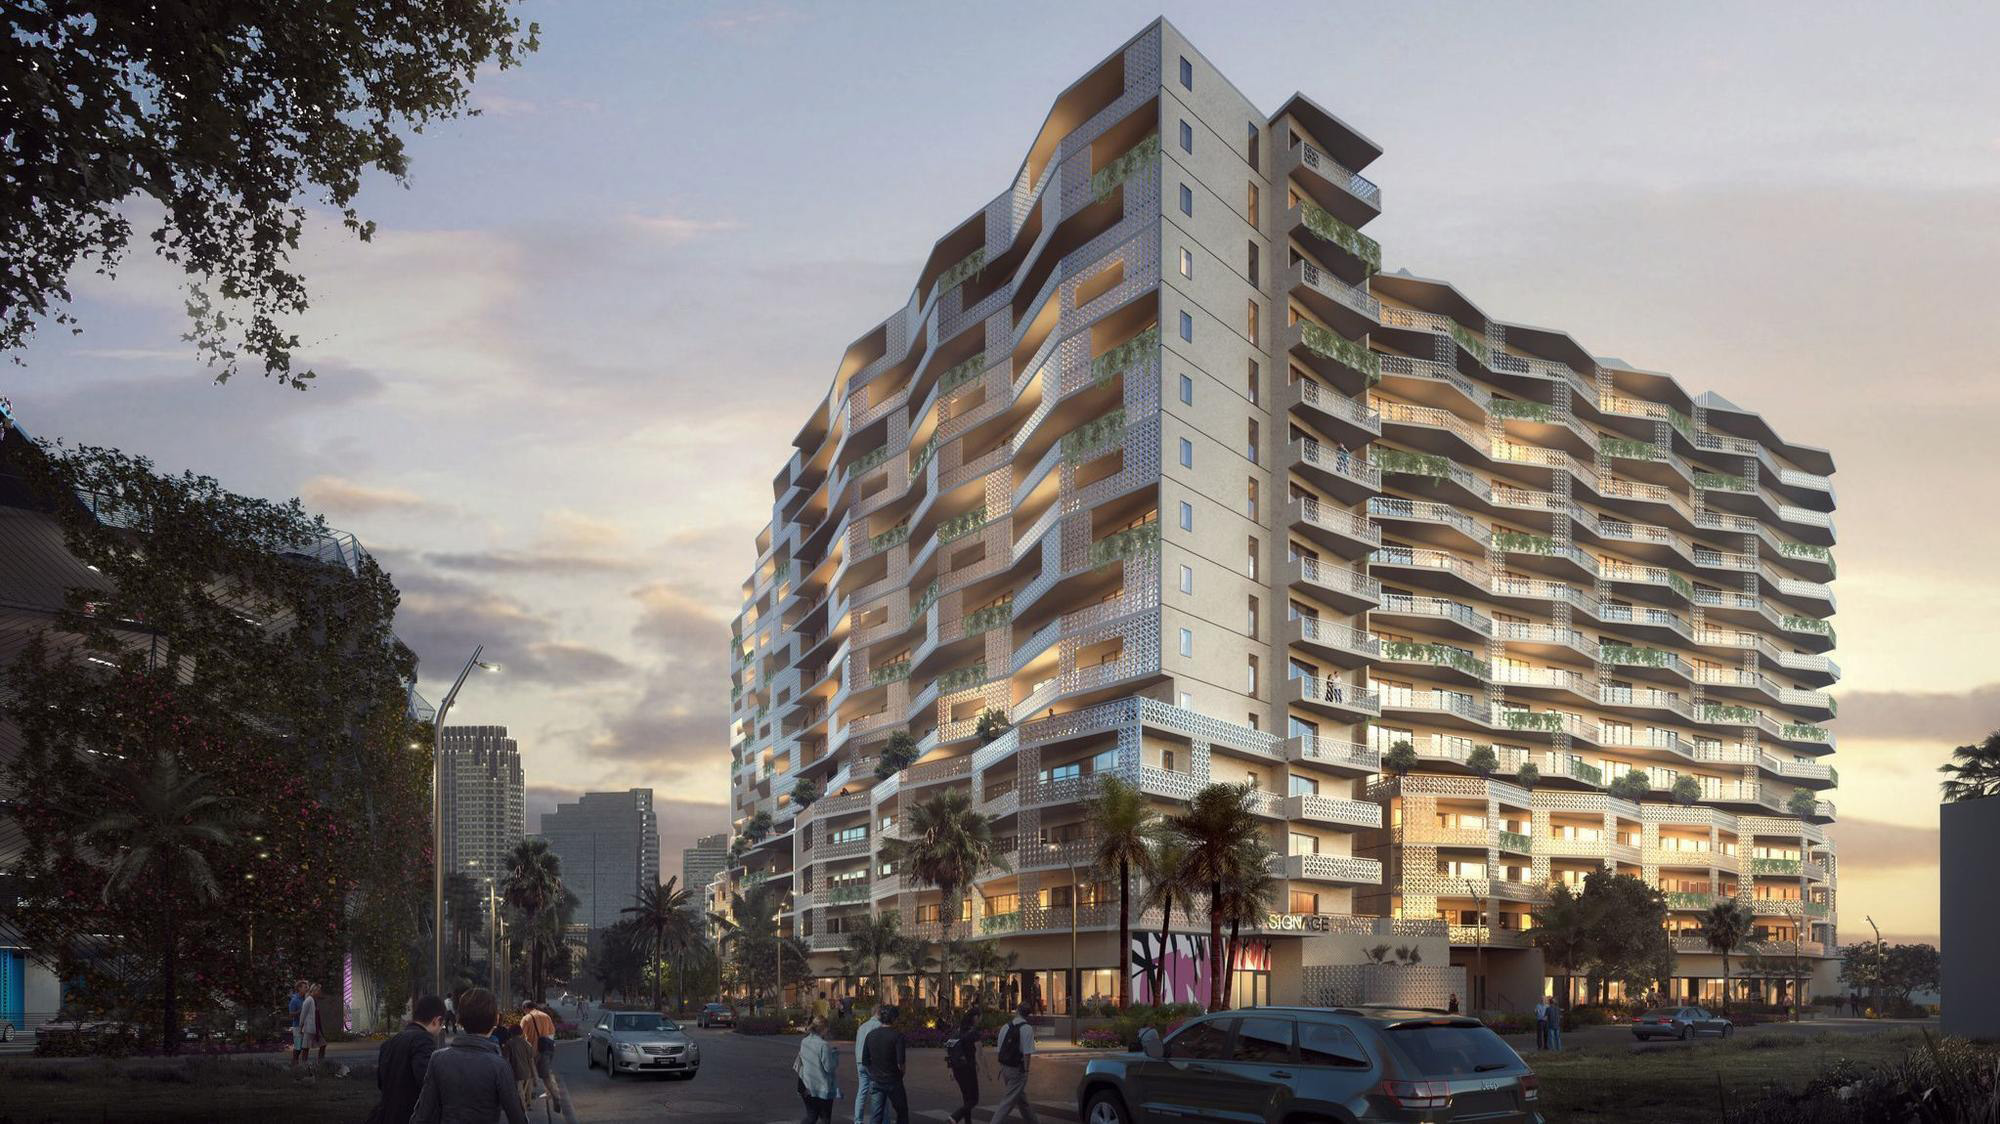 Rendering of ON3RD, the prefab affordable housing project designed by Glavovic Studio and supported by the AIDS Healthcare Foundation (AHF)